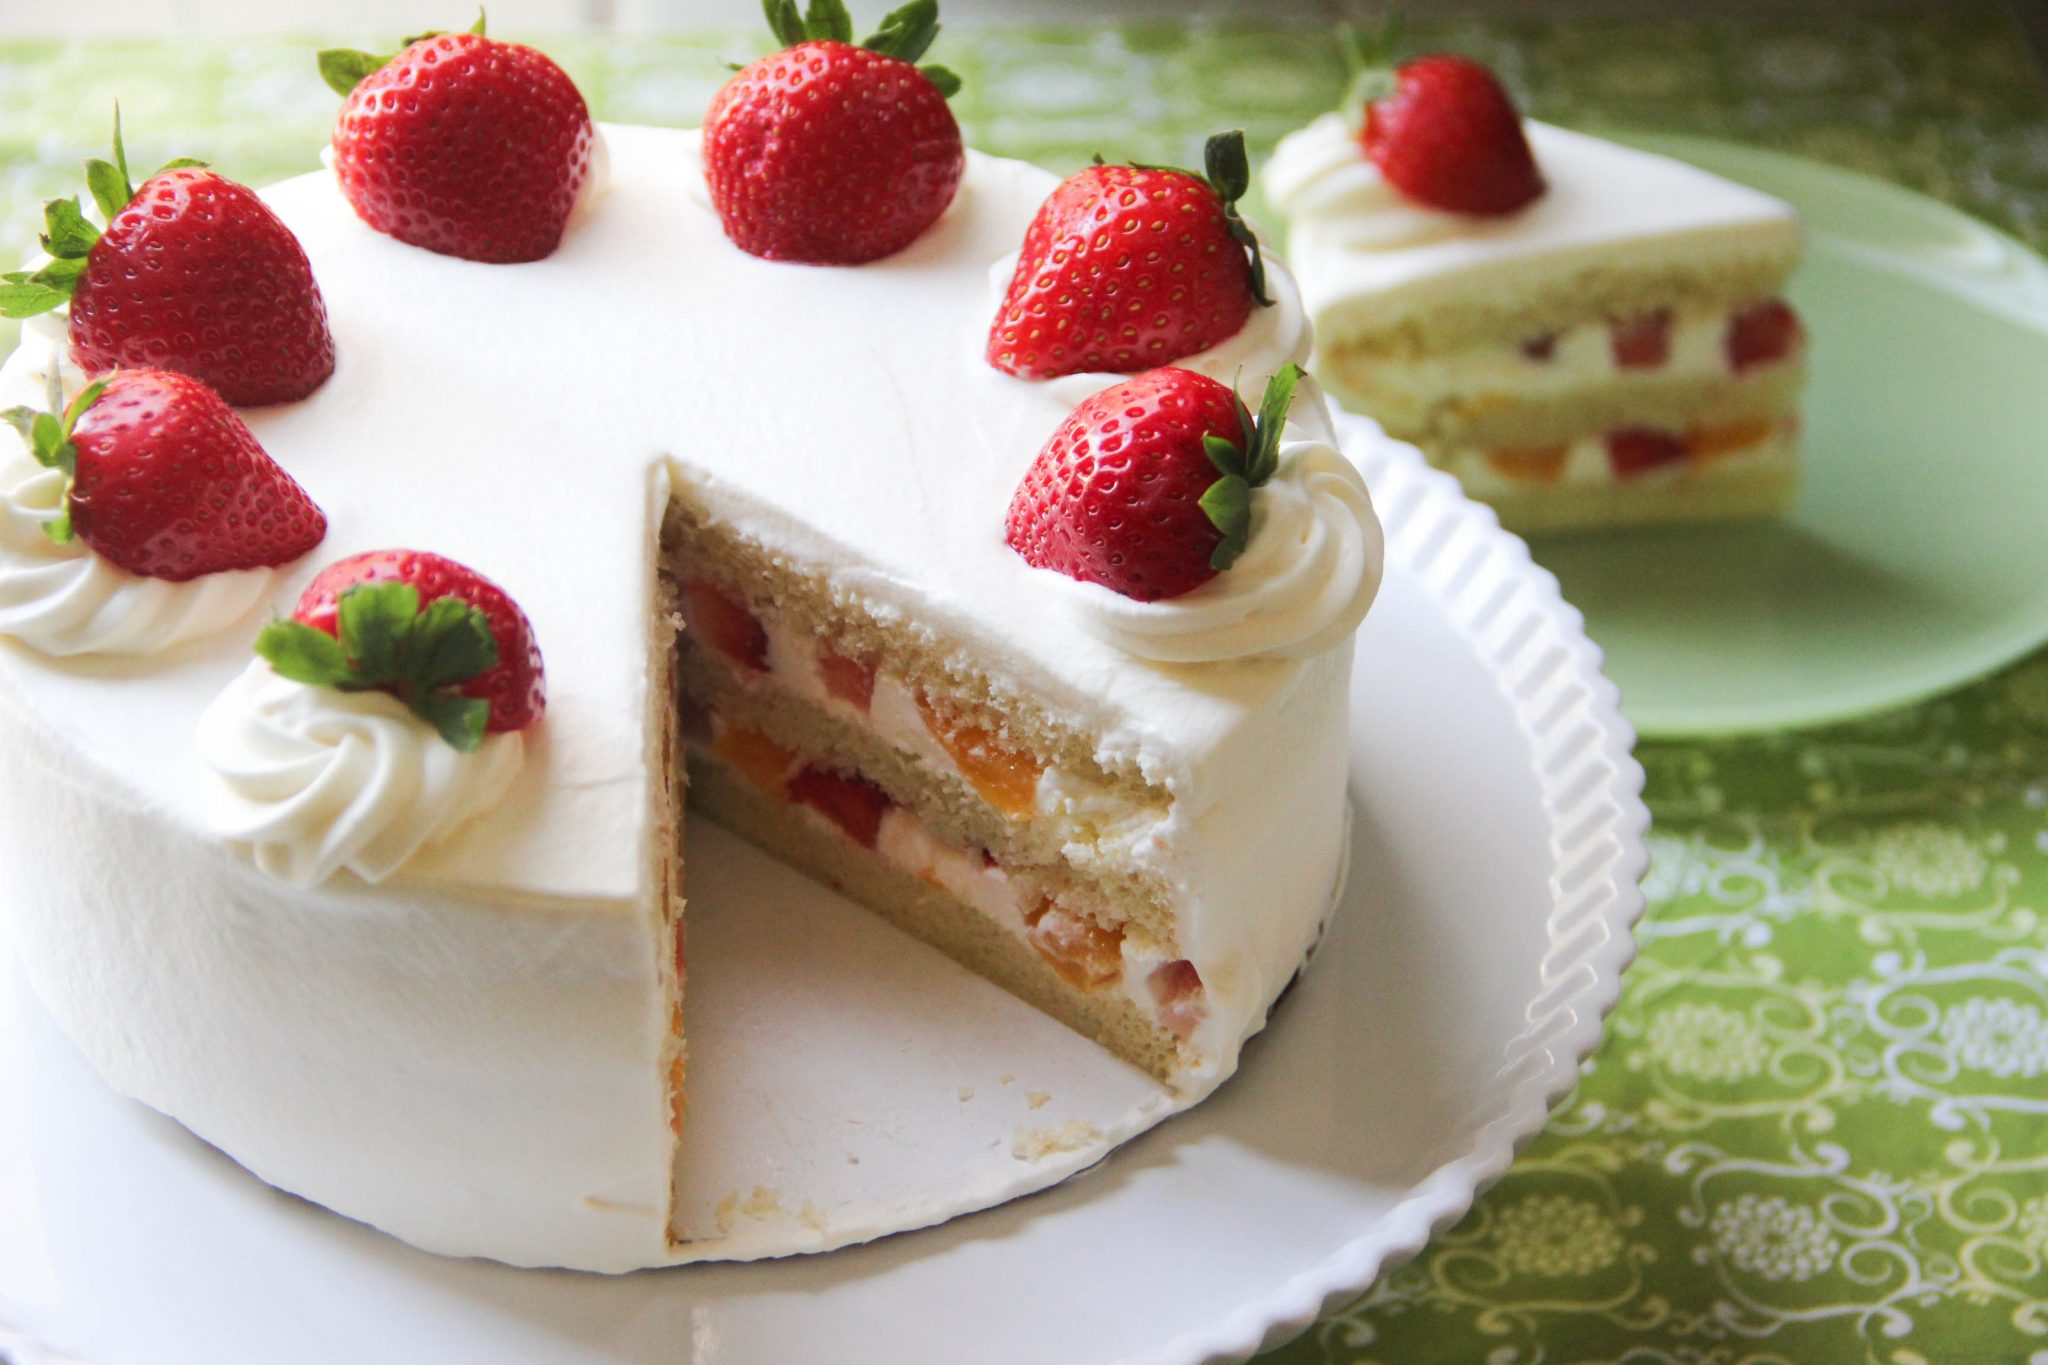 Strawberry Shortcake Recipe Cakedessert